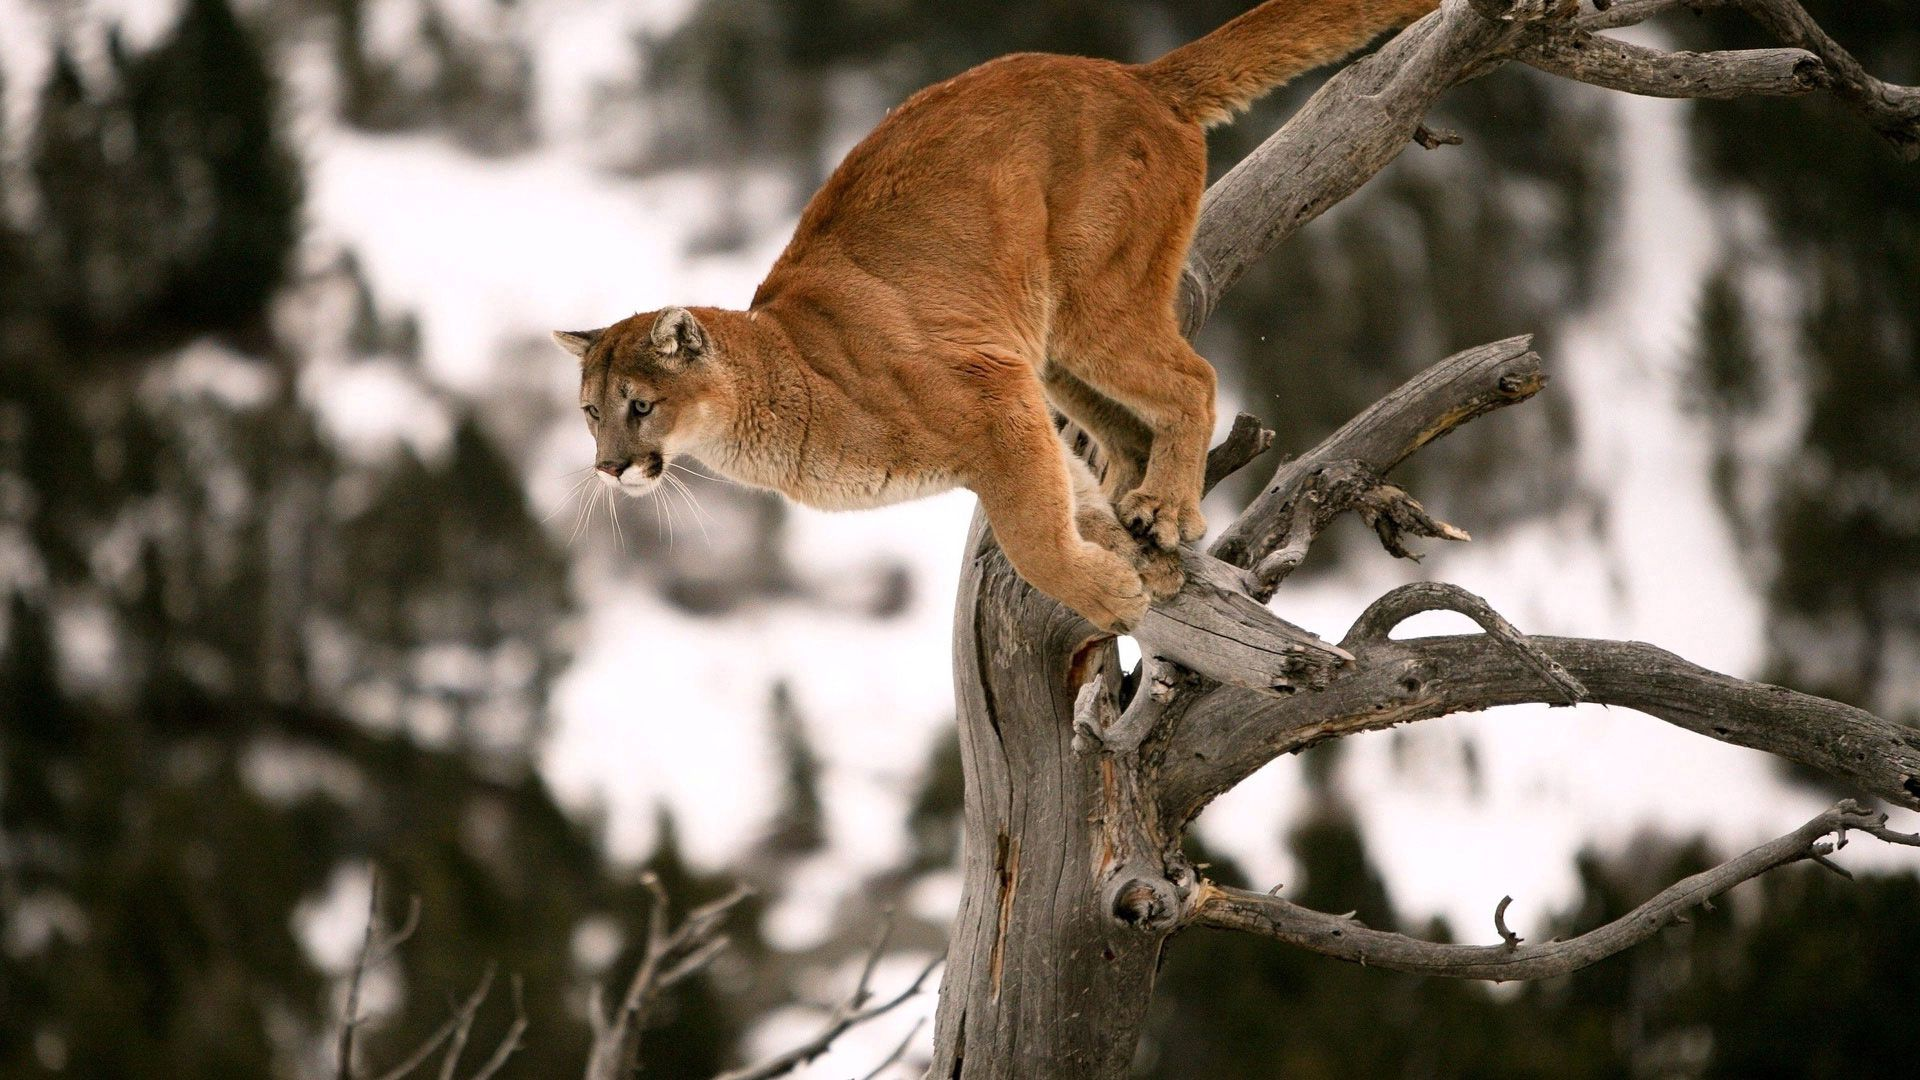 111672 Screensavers and Wallpapers Branches for phone. Download Animals, Puma, Wood, Tree, Branches, Bounce, Jump, Blurred Background pictures for free